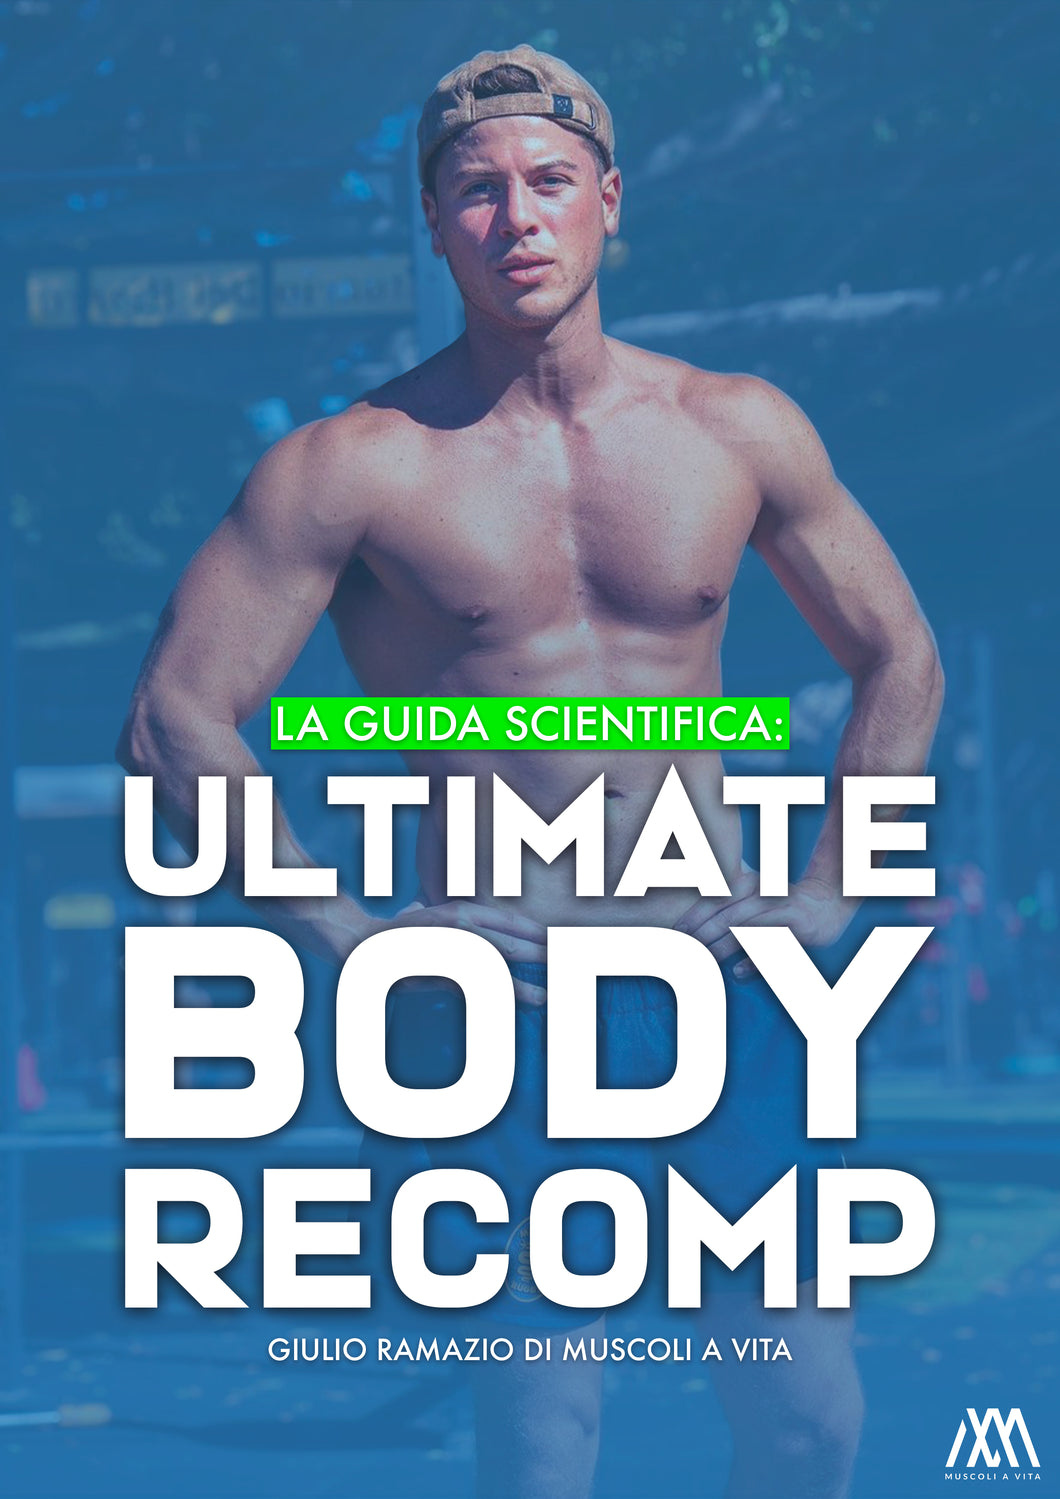 LA GUIDA SCIENTIFICA: ULTIMATE BODY RECOMP